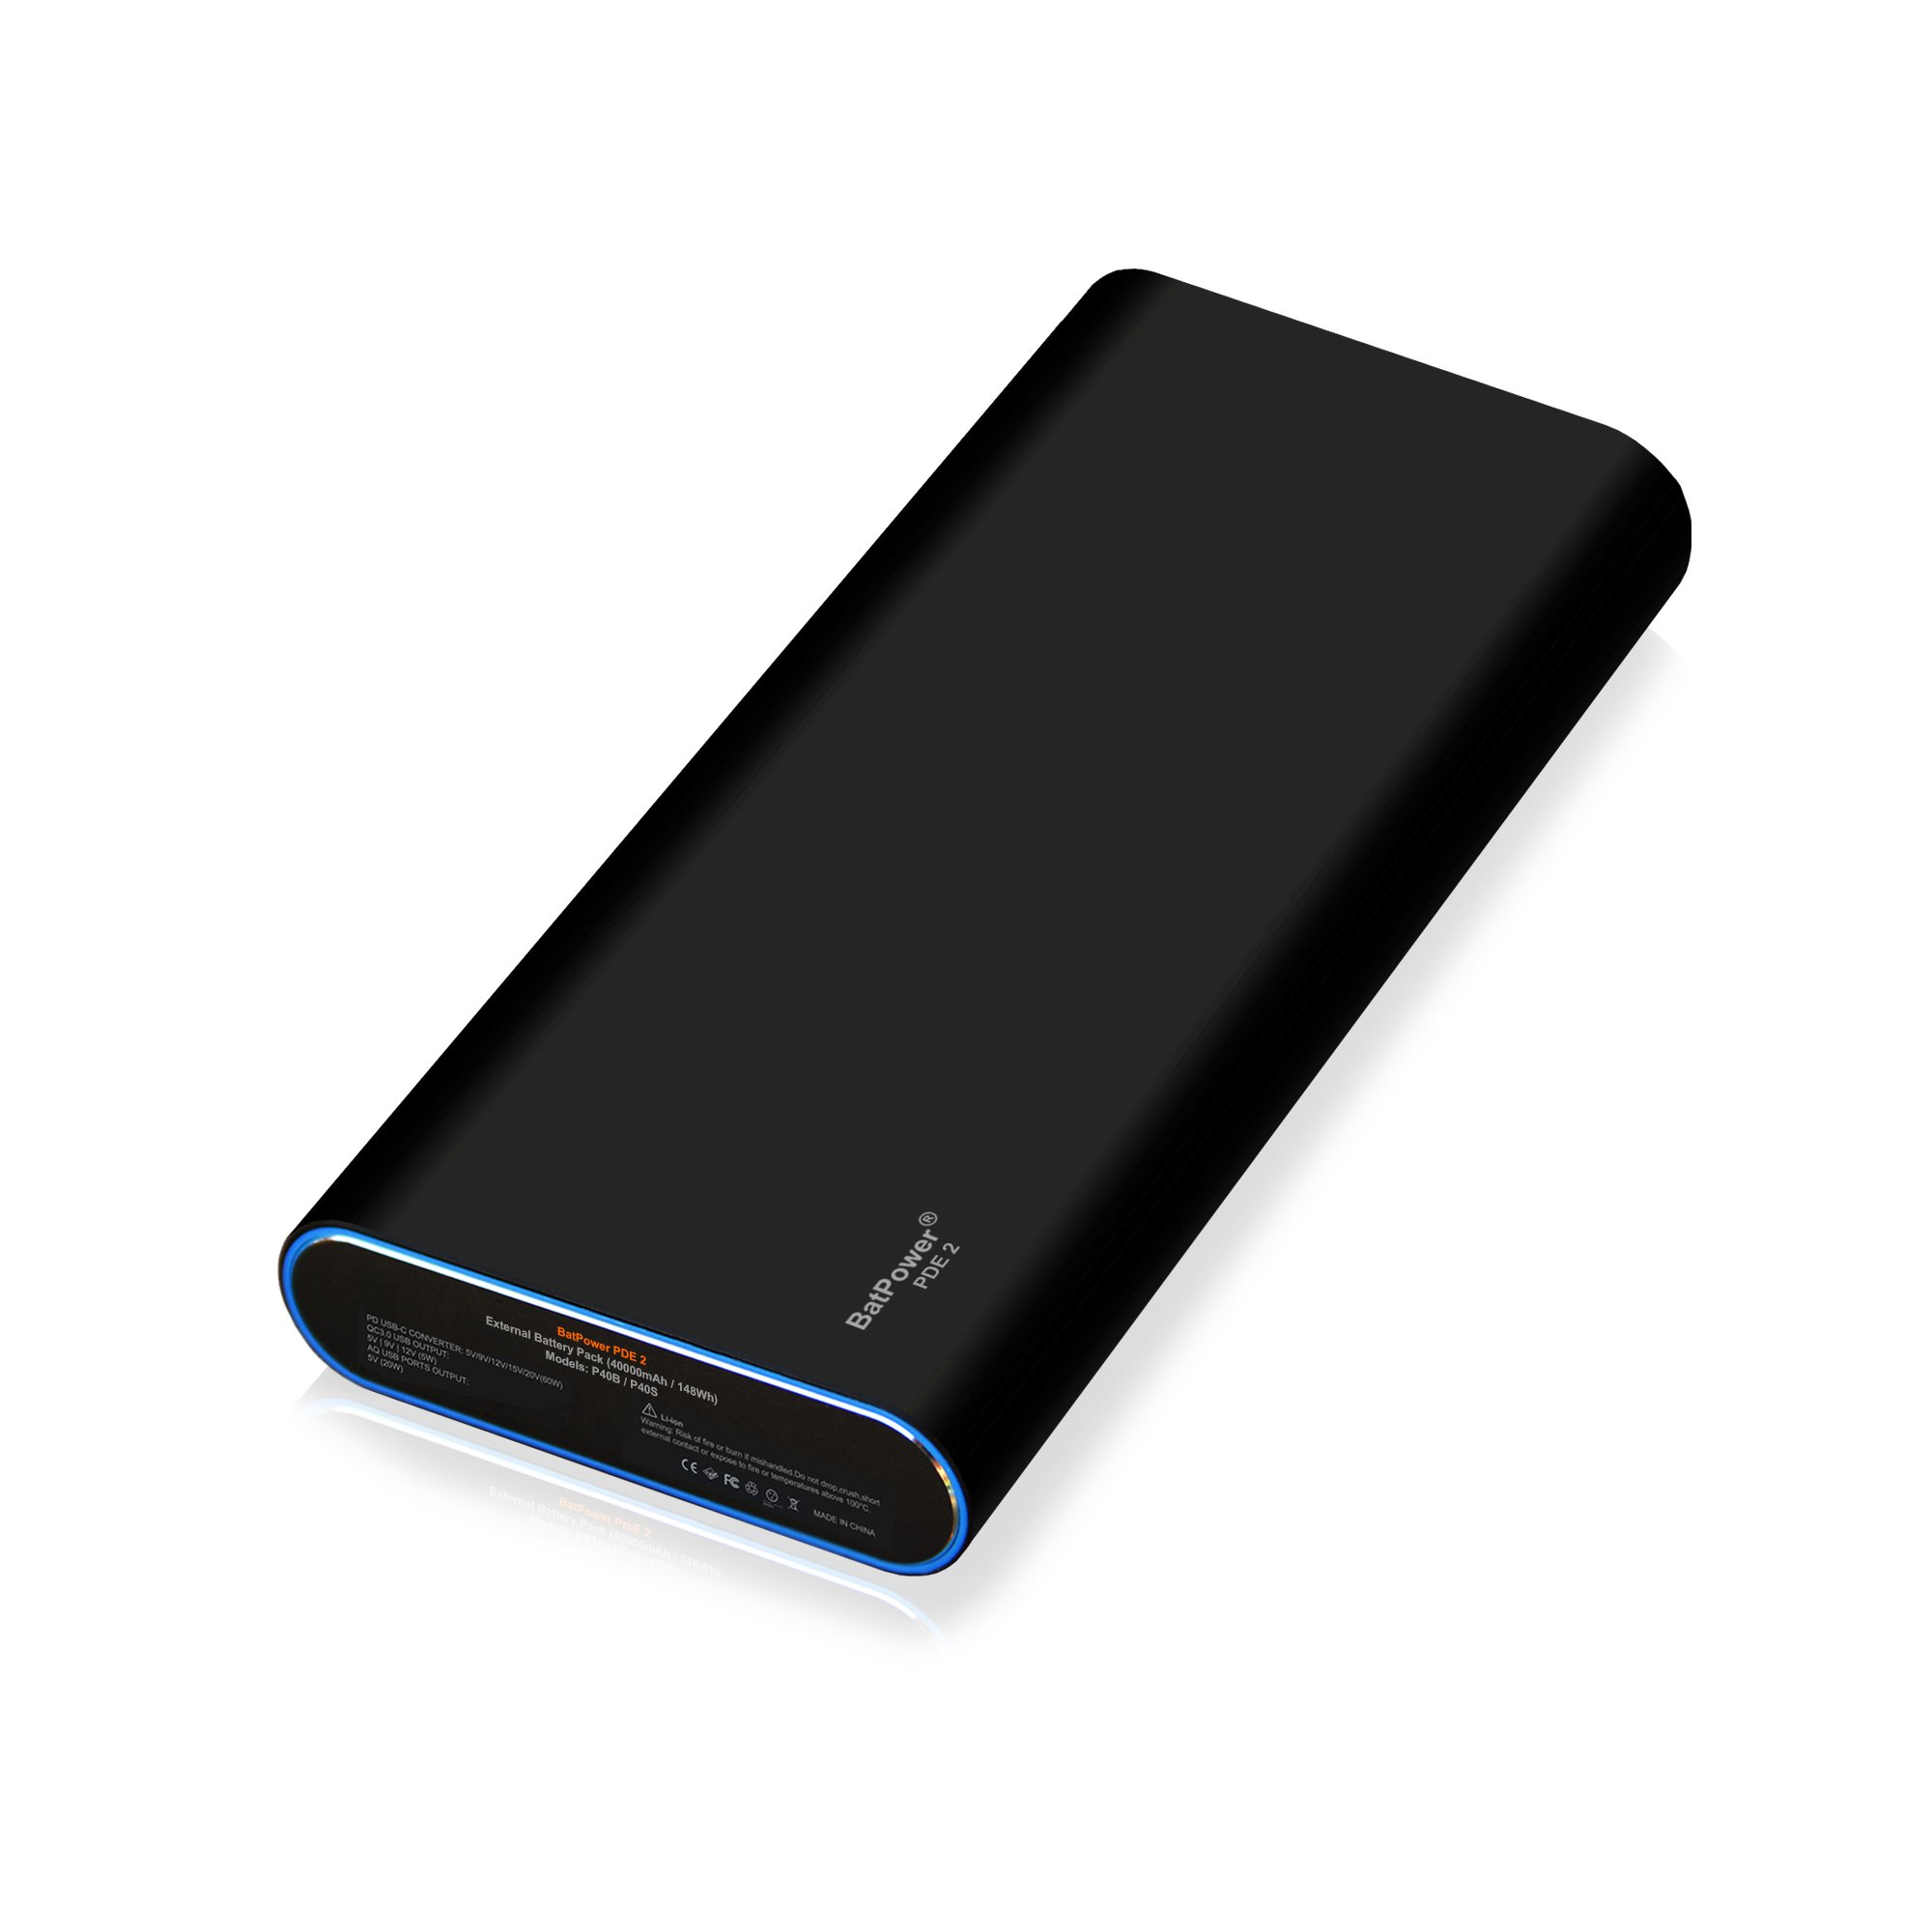 BatPower PDE 2 P40B USB-C Power Bank Portable Charger External Battery for Apple Microsoft HP Lenovo Dell Razer Asus LG Acer MSI Samsung PD USB C laptop notebook tablet smartphone -148Wh by BatPower (Image #8)